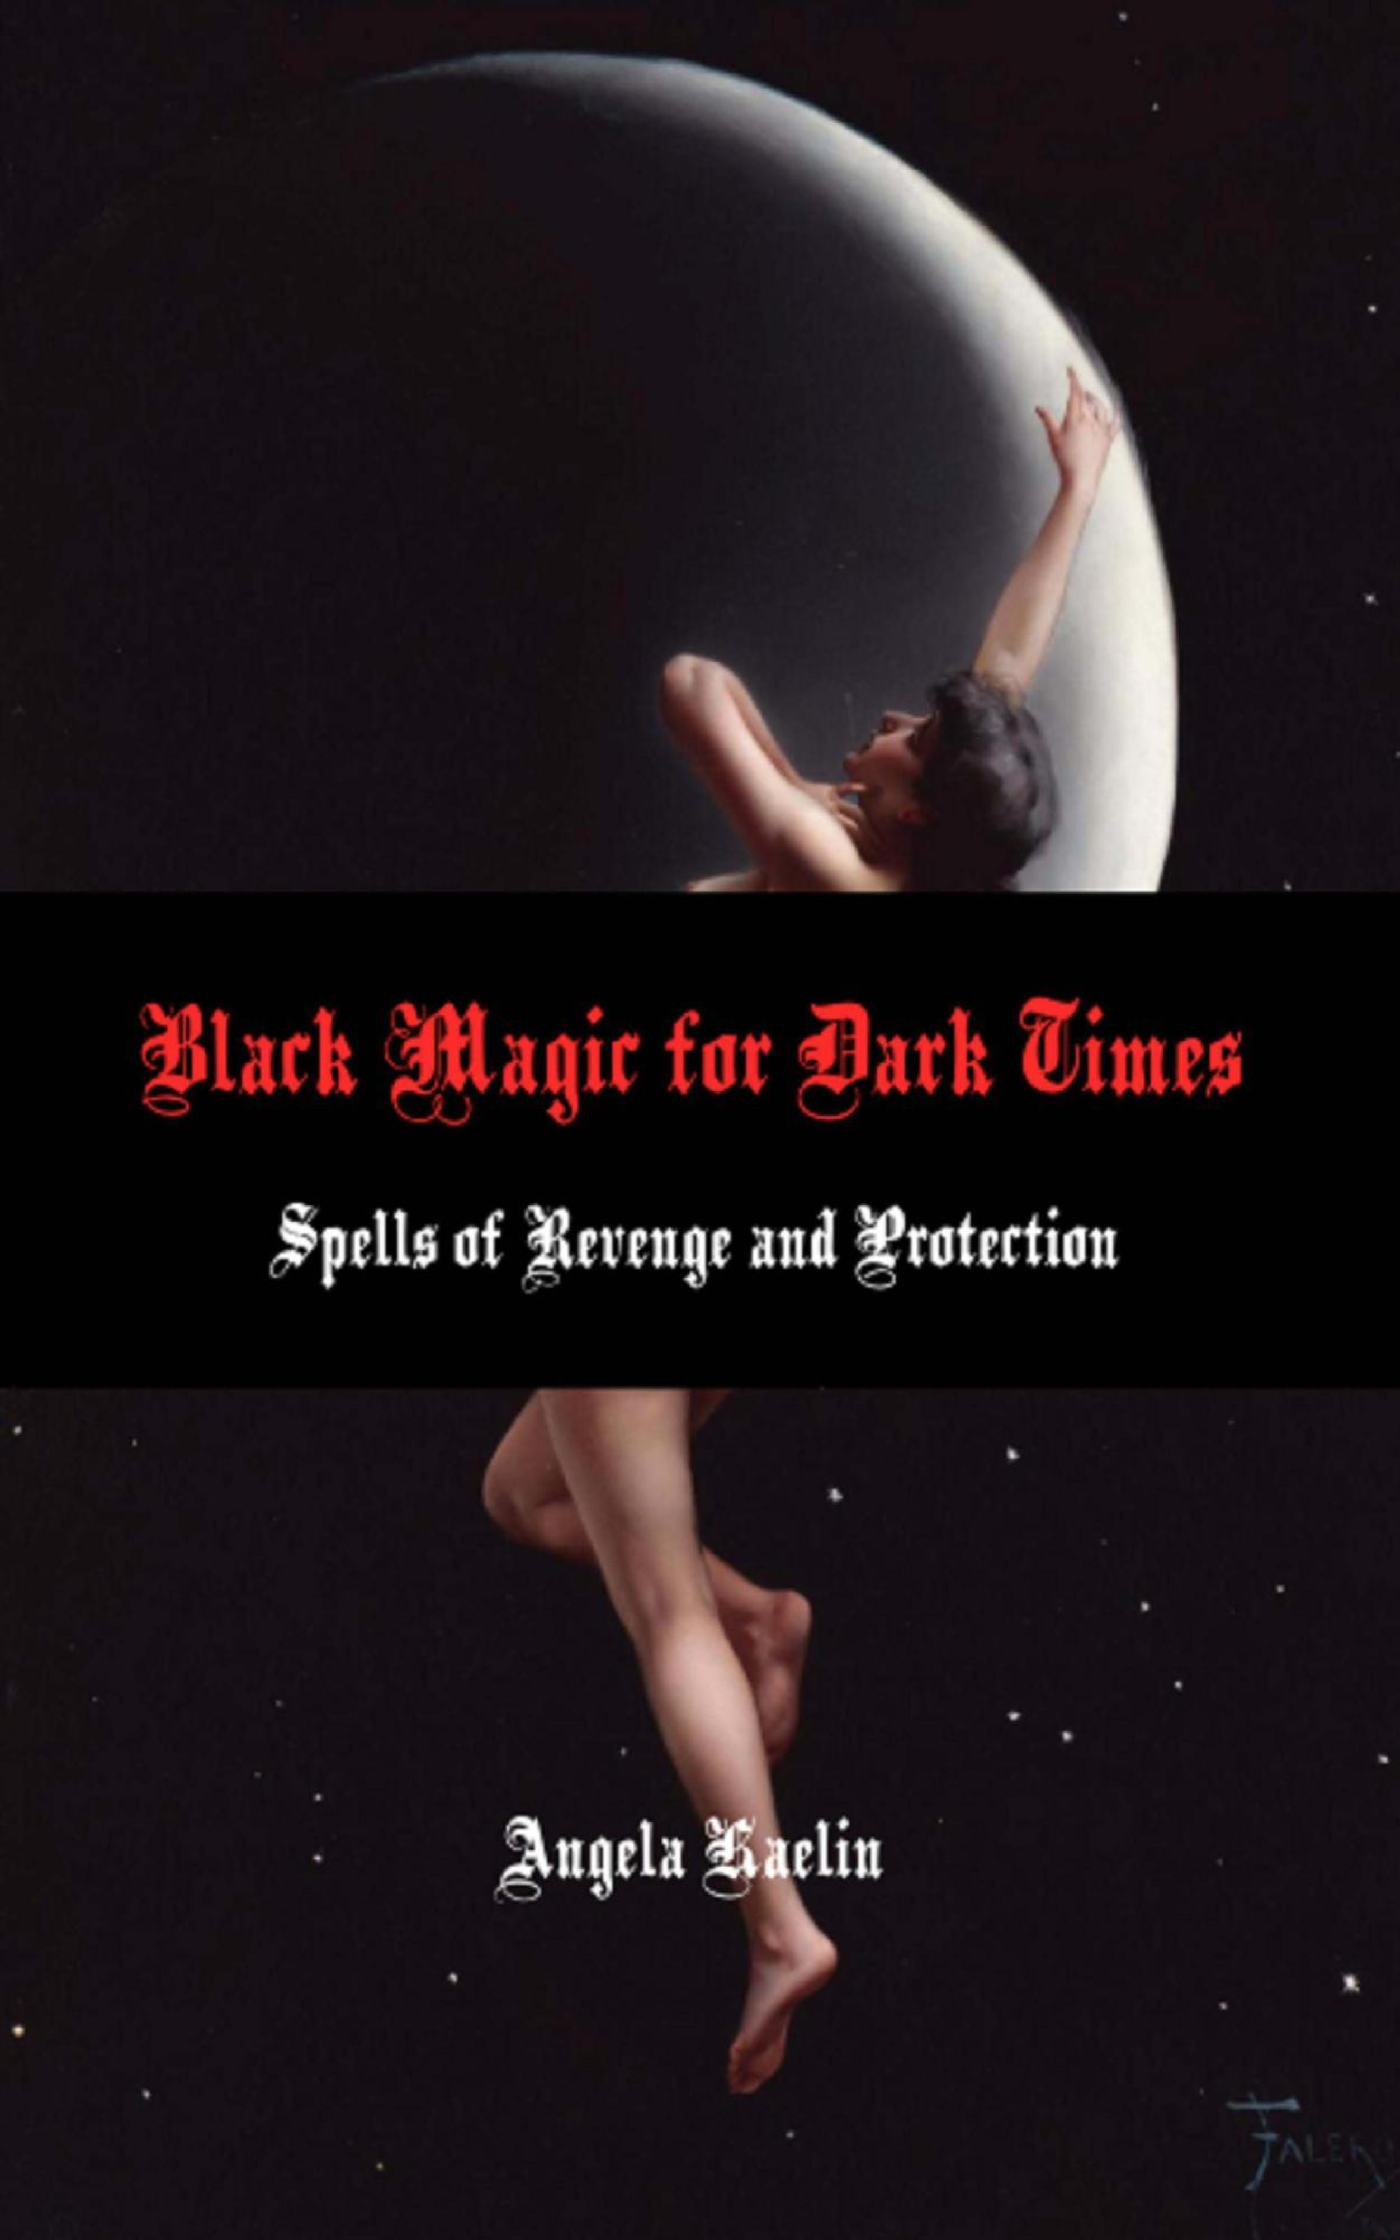 Buy Black Magic for Dark Times: Spells for Revenge and Protection today!